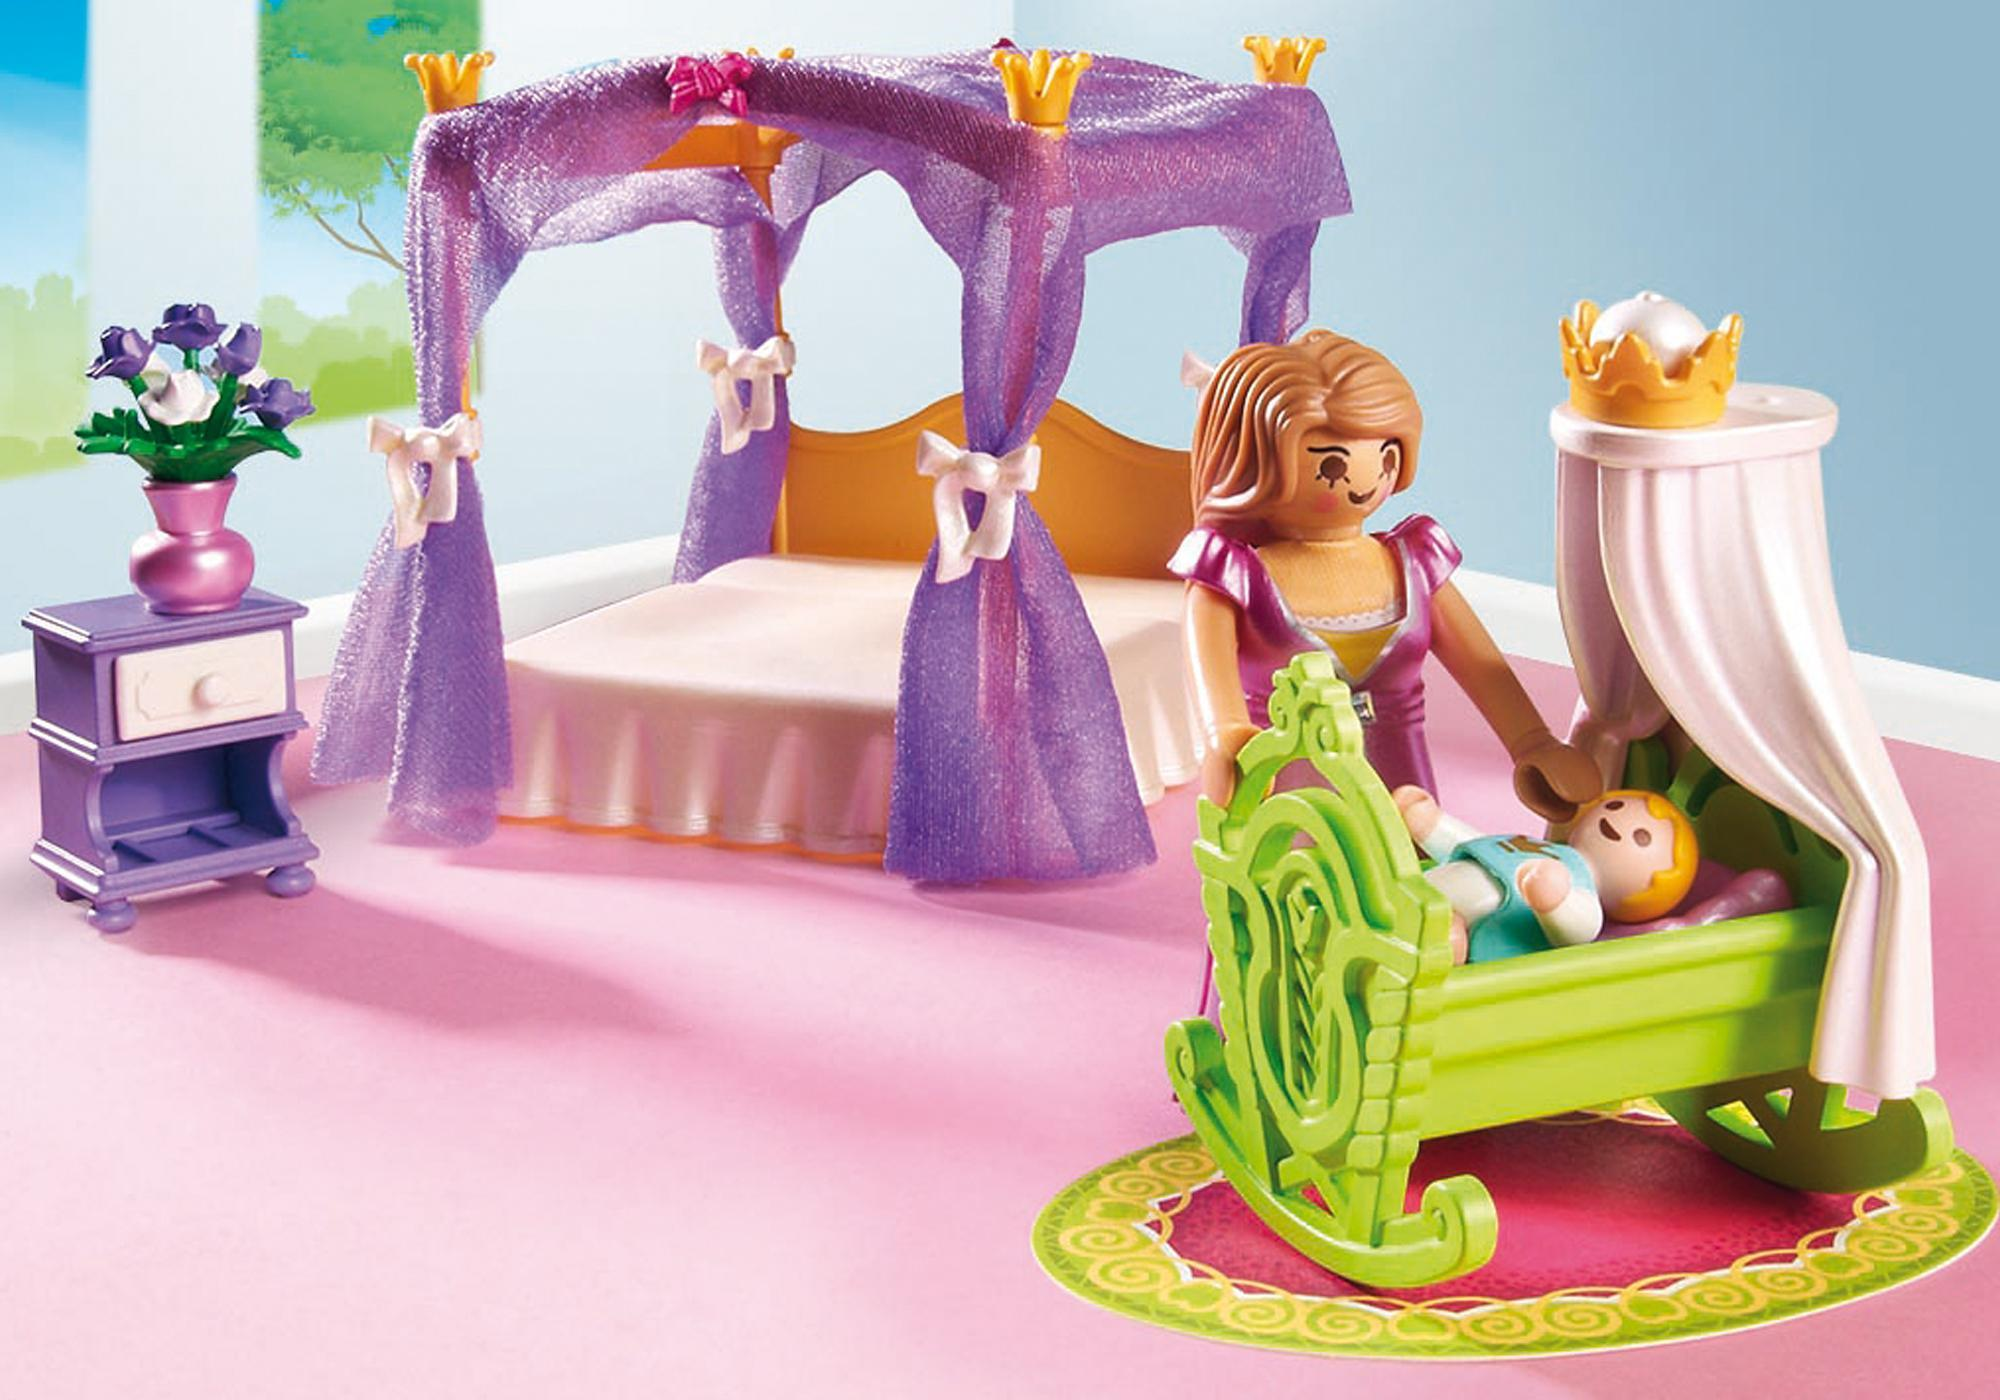 http://media.playmobil.com/i/playmobil/6851_product_extra1